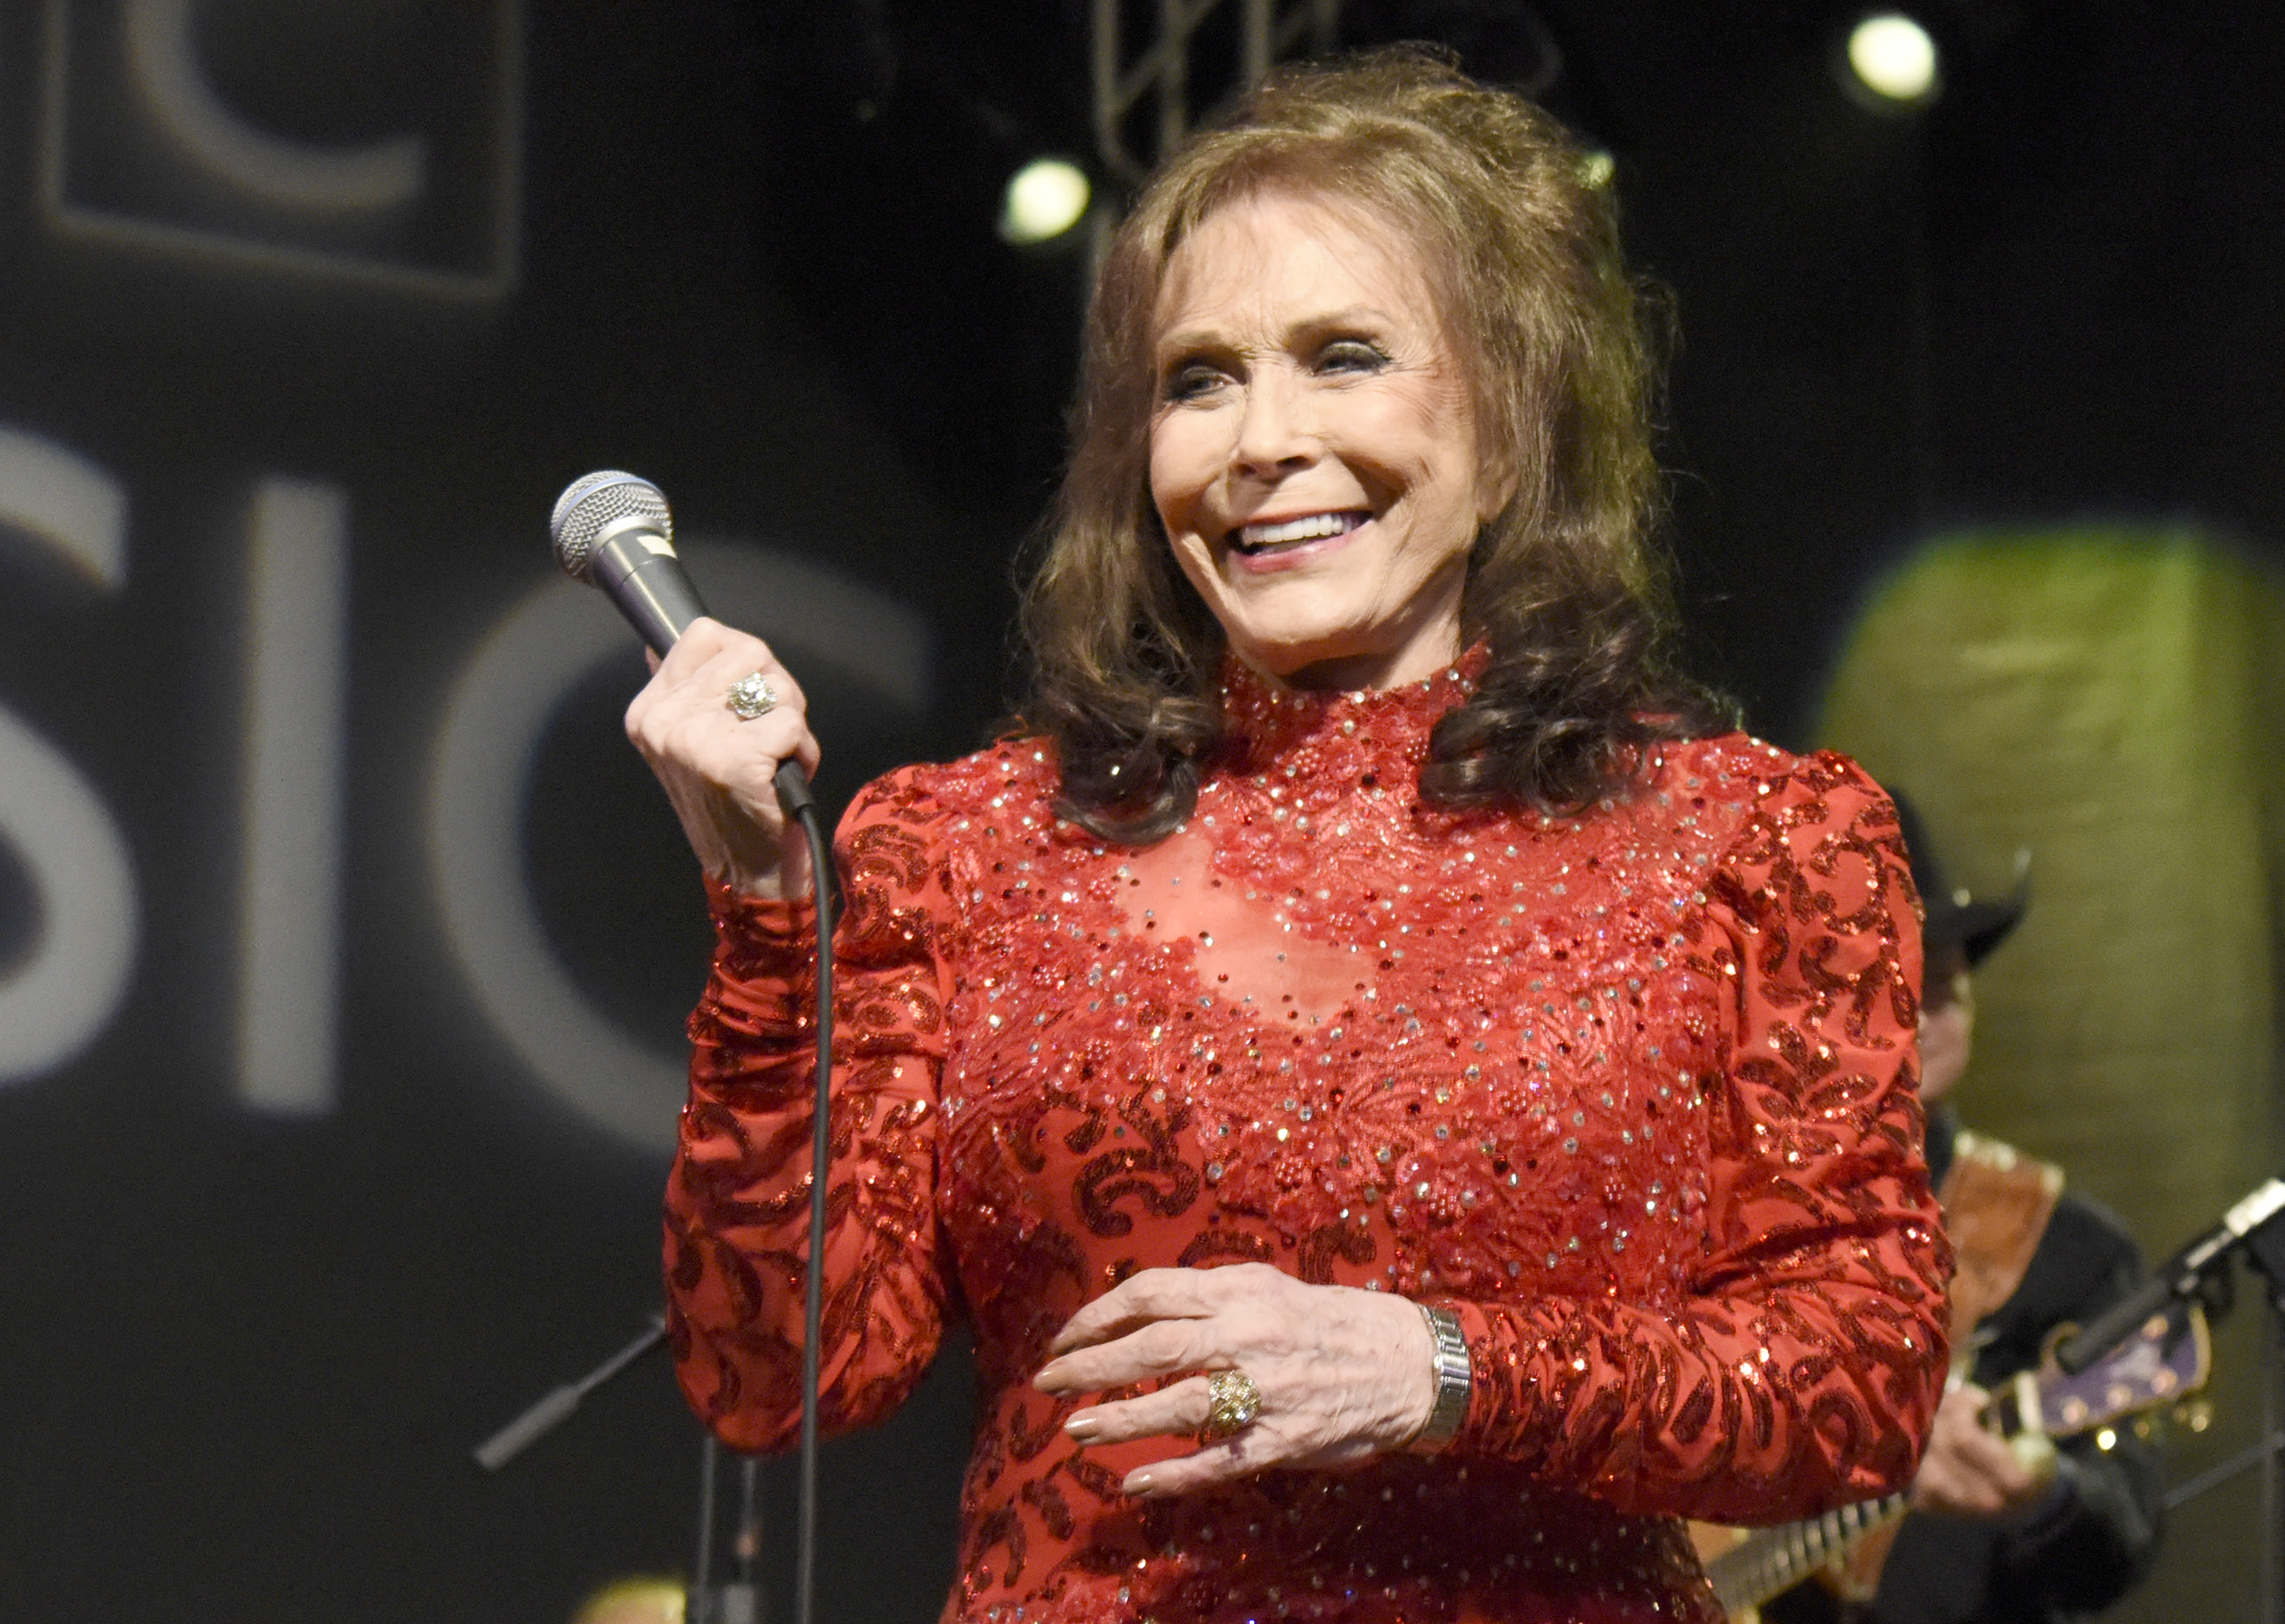 loretta lynns holiday themed album white christmas blue comes out october 7th - Who Wrote The Song White Christmas